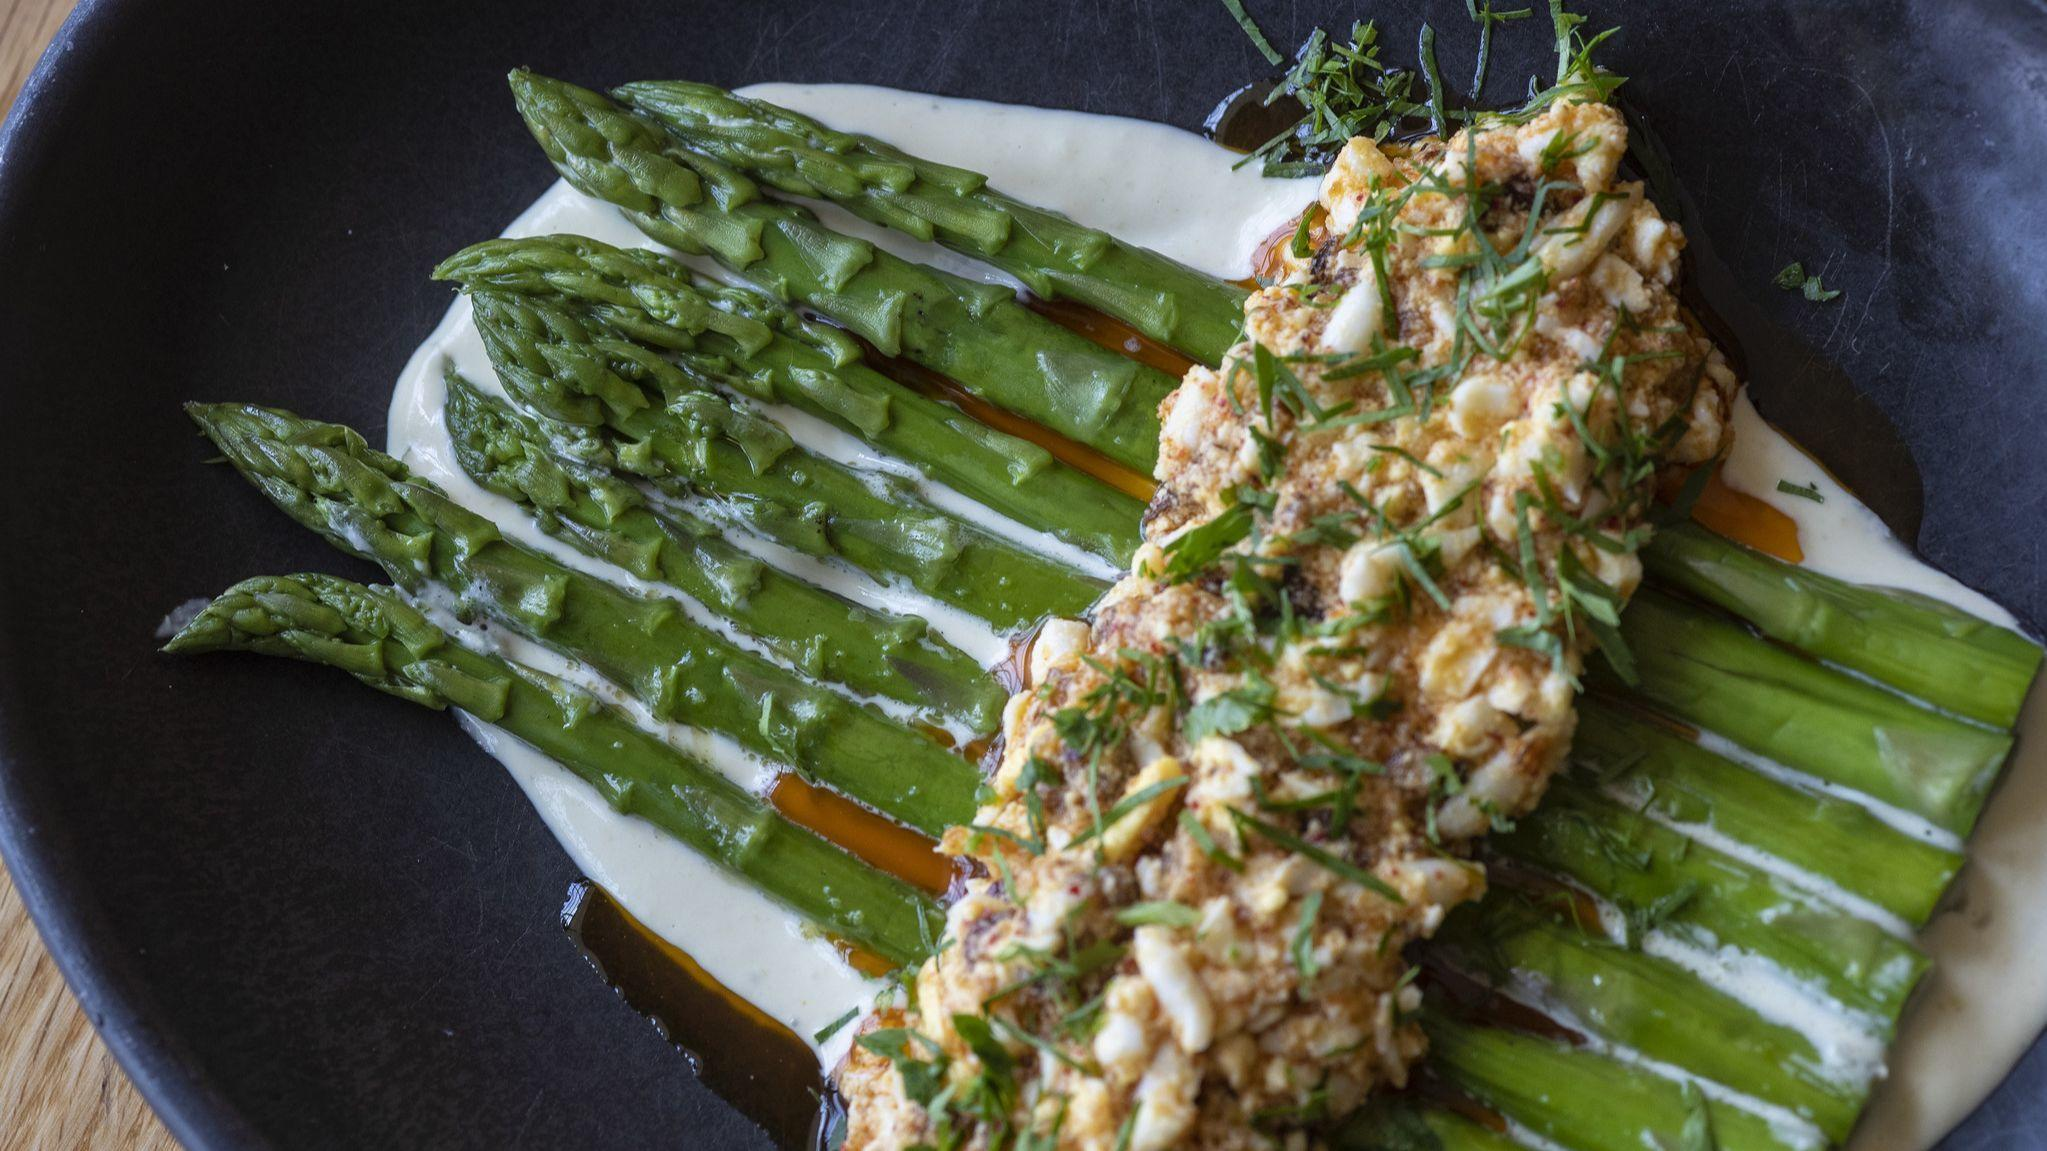 Chilled Asparagus with Green Garlic Mayonnaise and Dijon Egg Salad